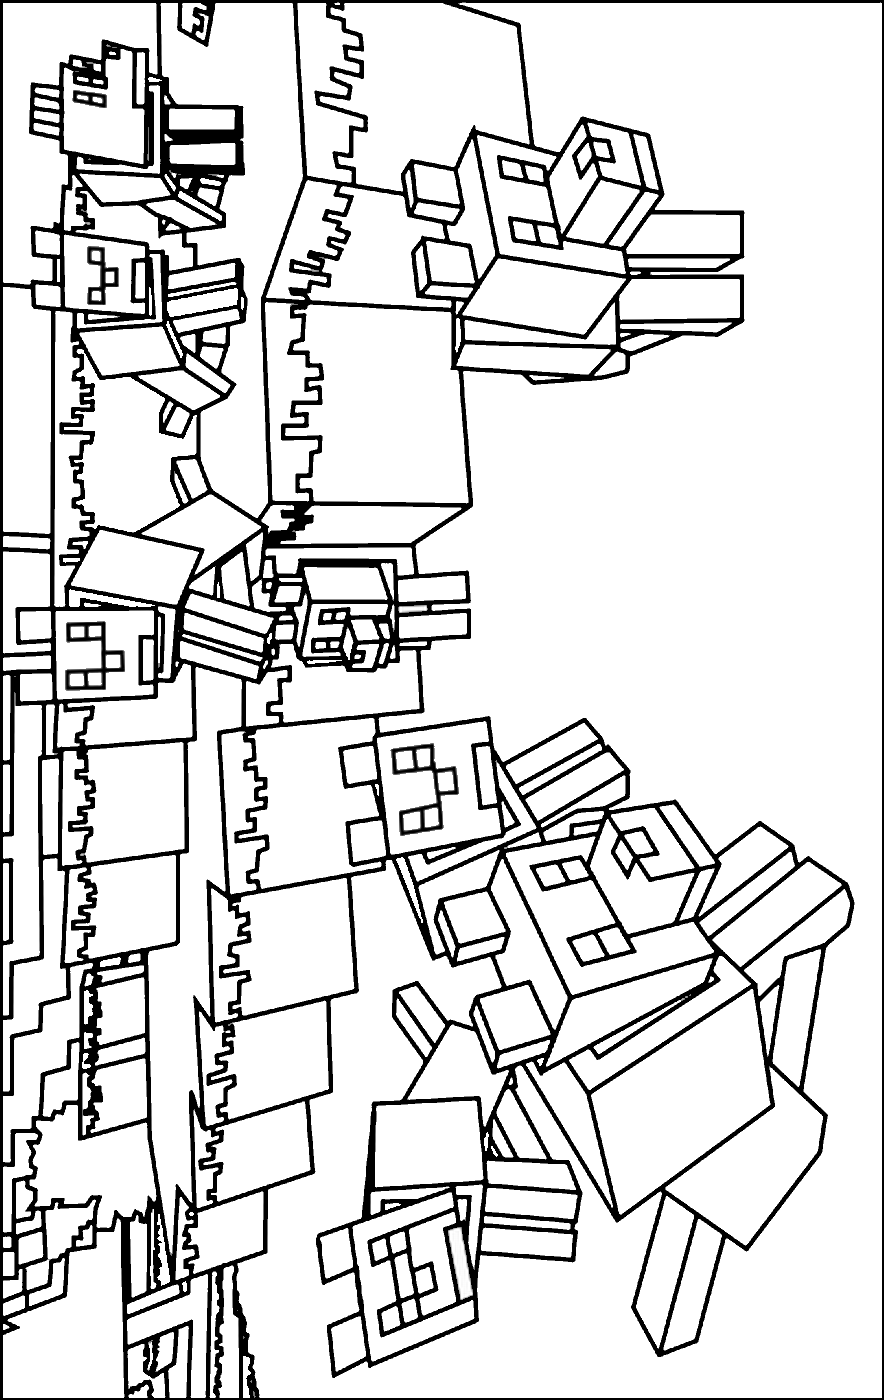 minecraft skin coloring pages dantdm minecraft skin coloring pages sketch coloring page skin minecraft coloring pages 1 1